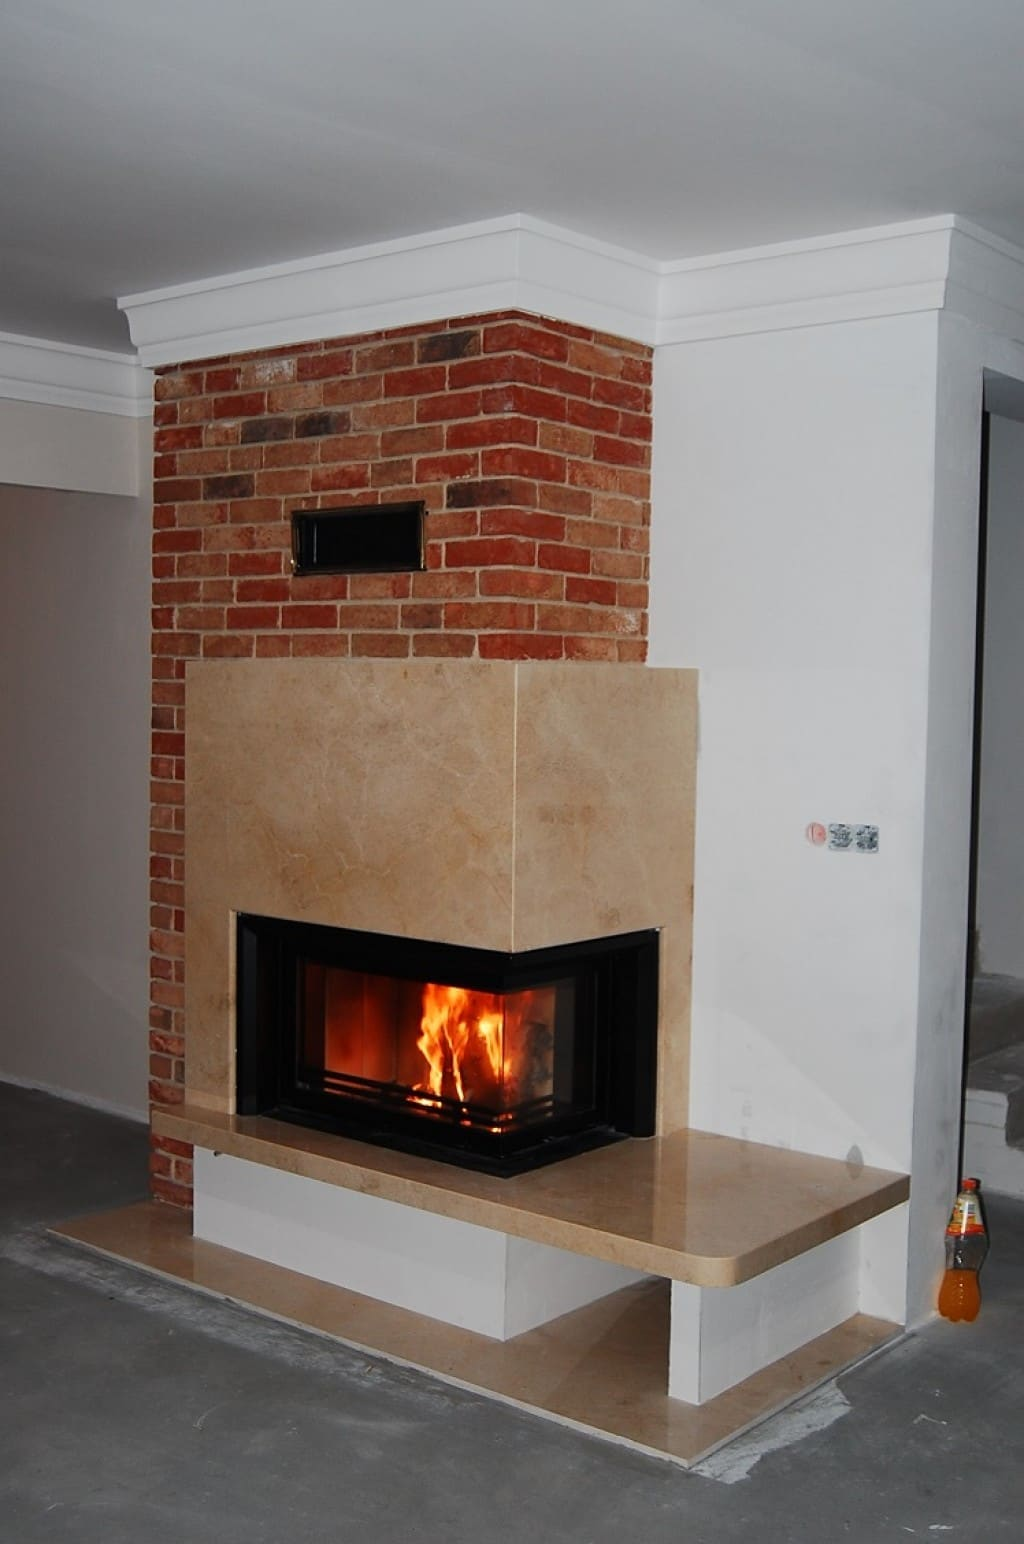 Blog - Fireplace accessories - in other words - what else do we need for our fireplace?